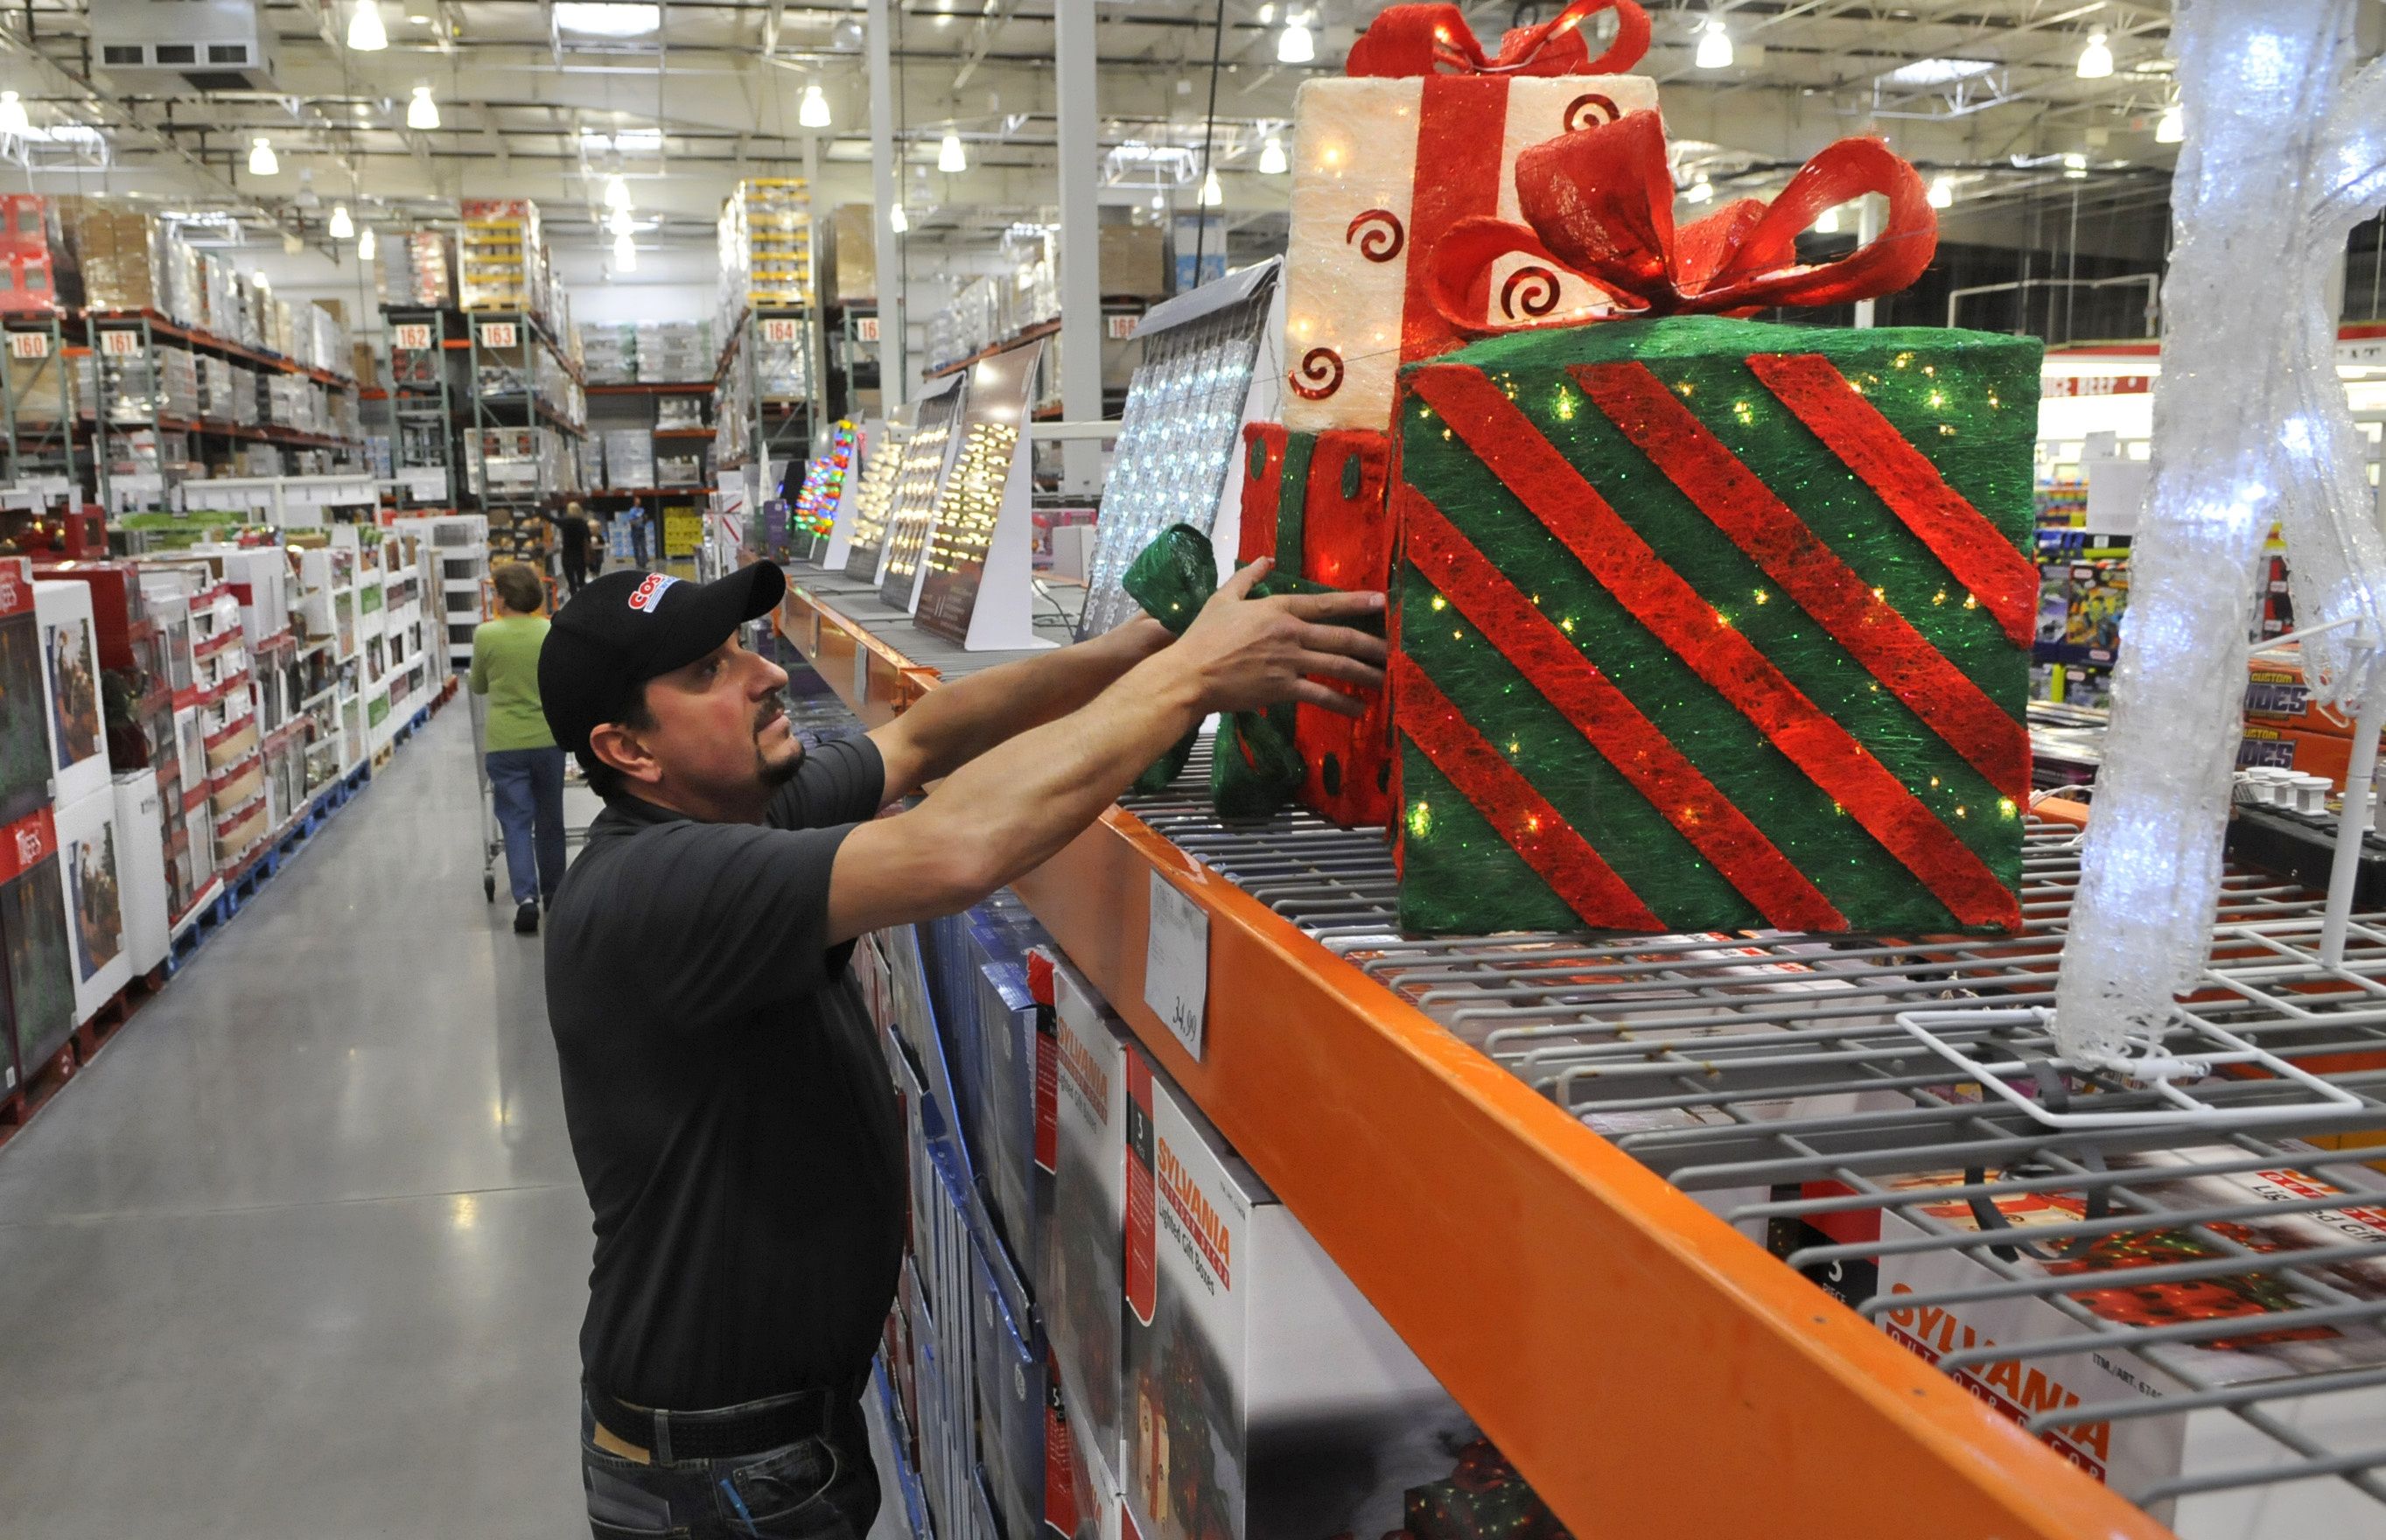 Mike Davis Store Stocker Straightens Merchandise Along The Holiday Aisle At Sprague Avenue